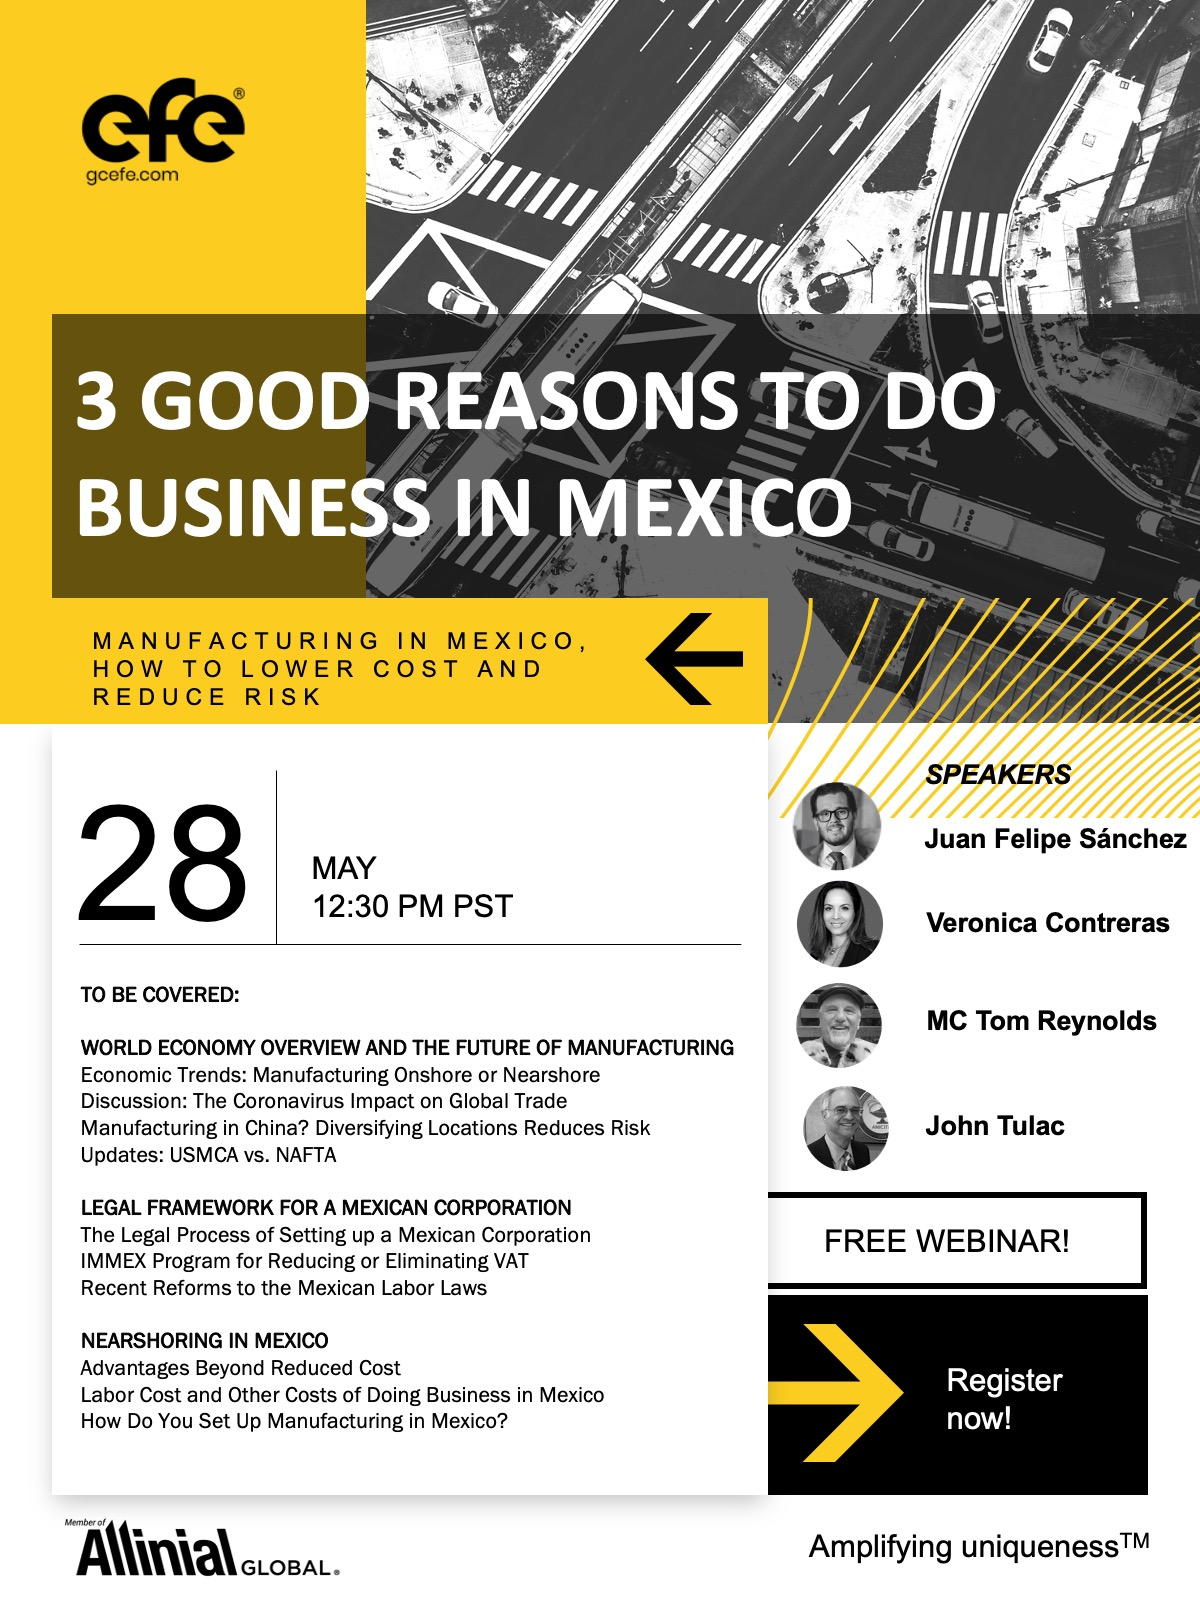 3 Good Reasons To Do Business In Mexico